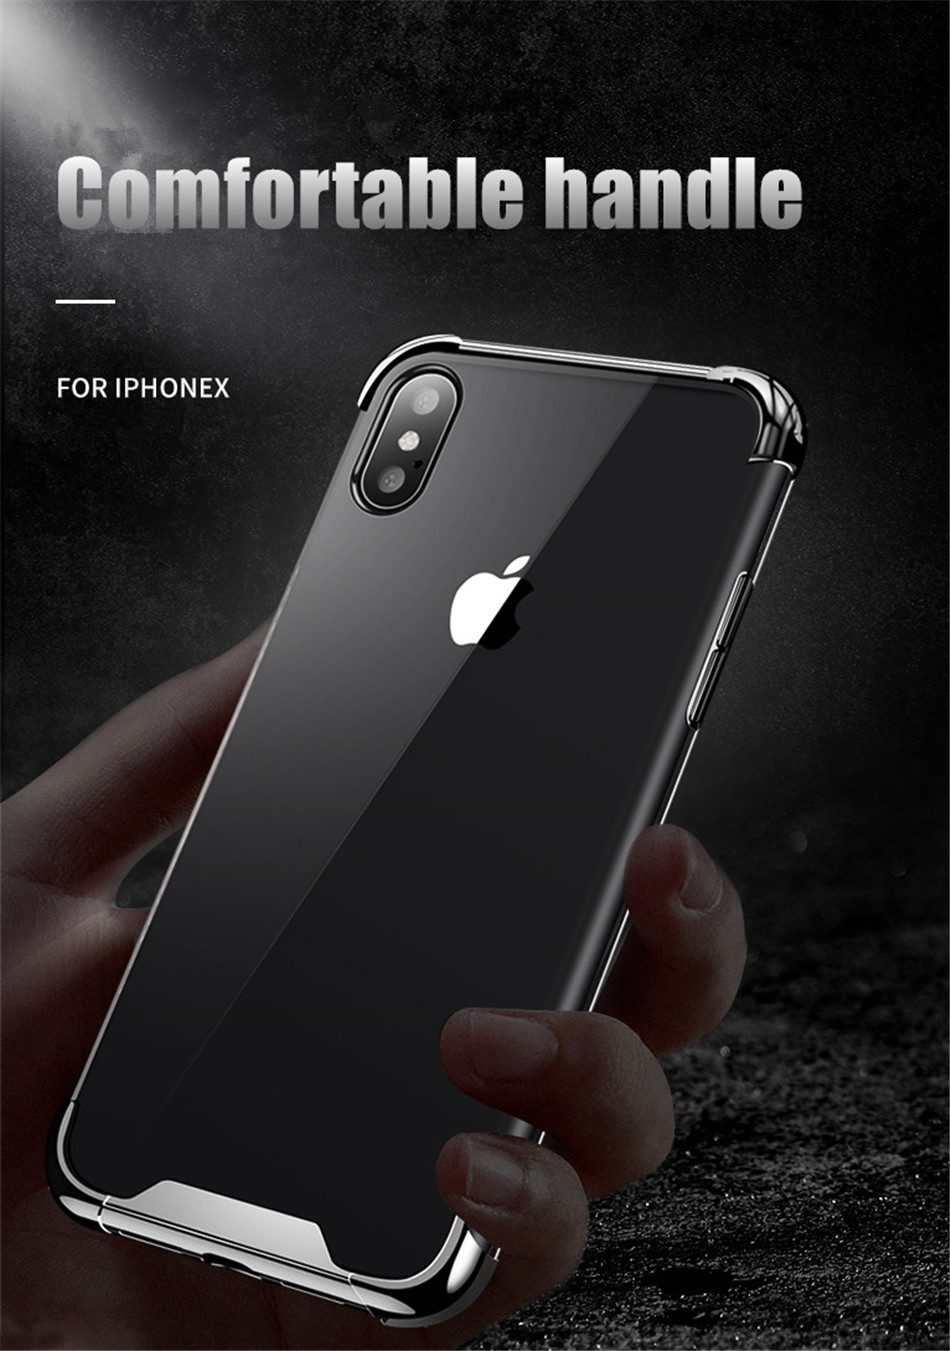 H17a35d645f8647daa24391ef2116a3c9r - USLION Shockproof Armor Clear Case For iPhone 11 Pro Max XS Max XR X 8 7 6 6s Plus 5 5s SE Transparent Phone Cases Airbag Cover